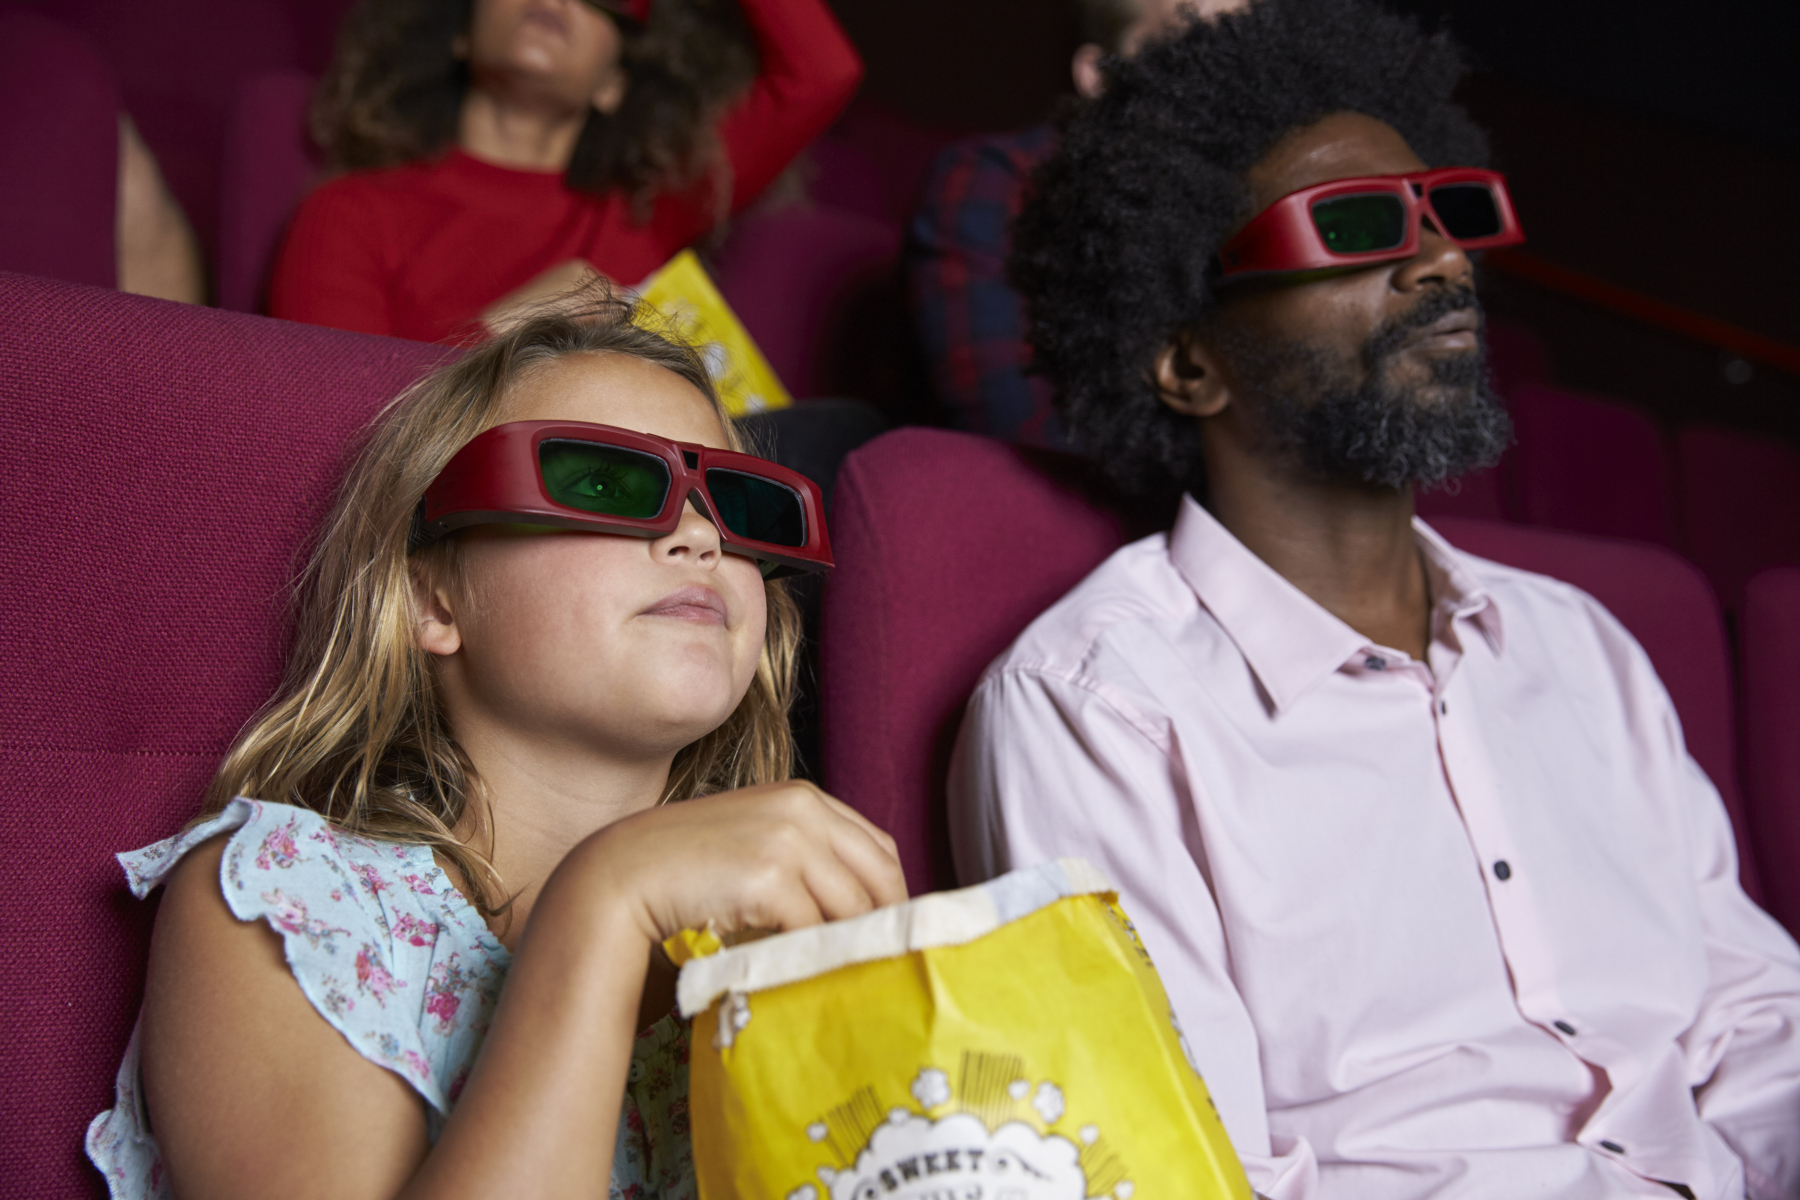 17821706-audience-in-cinema-wearing-3d-glasses-watching-comedy-film